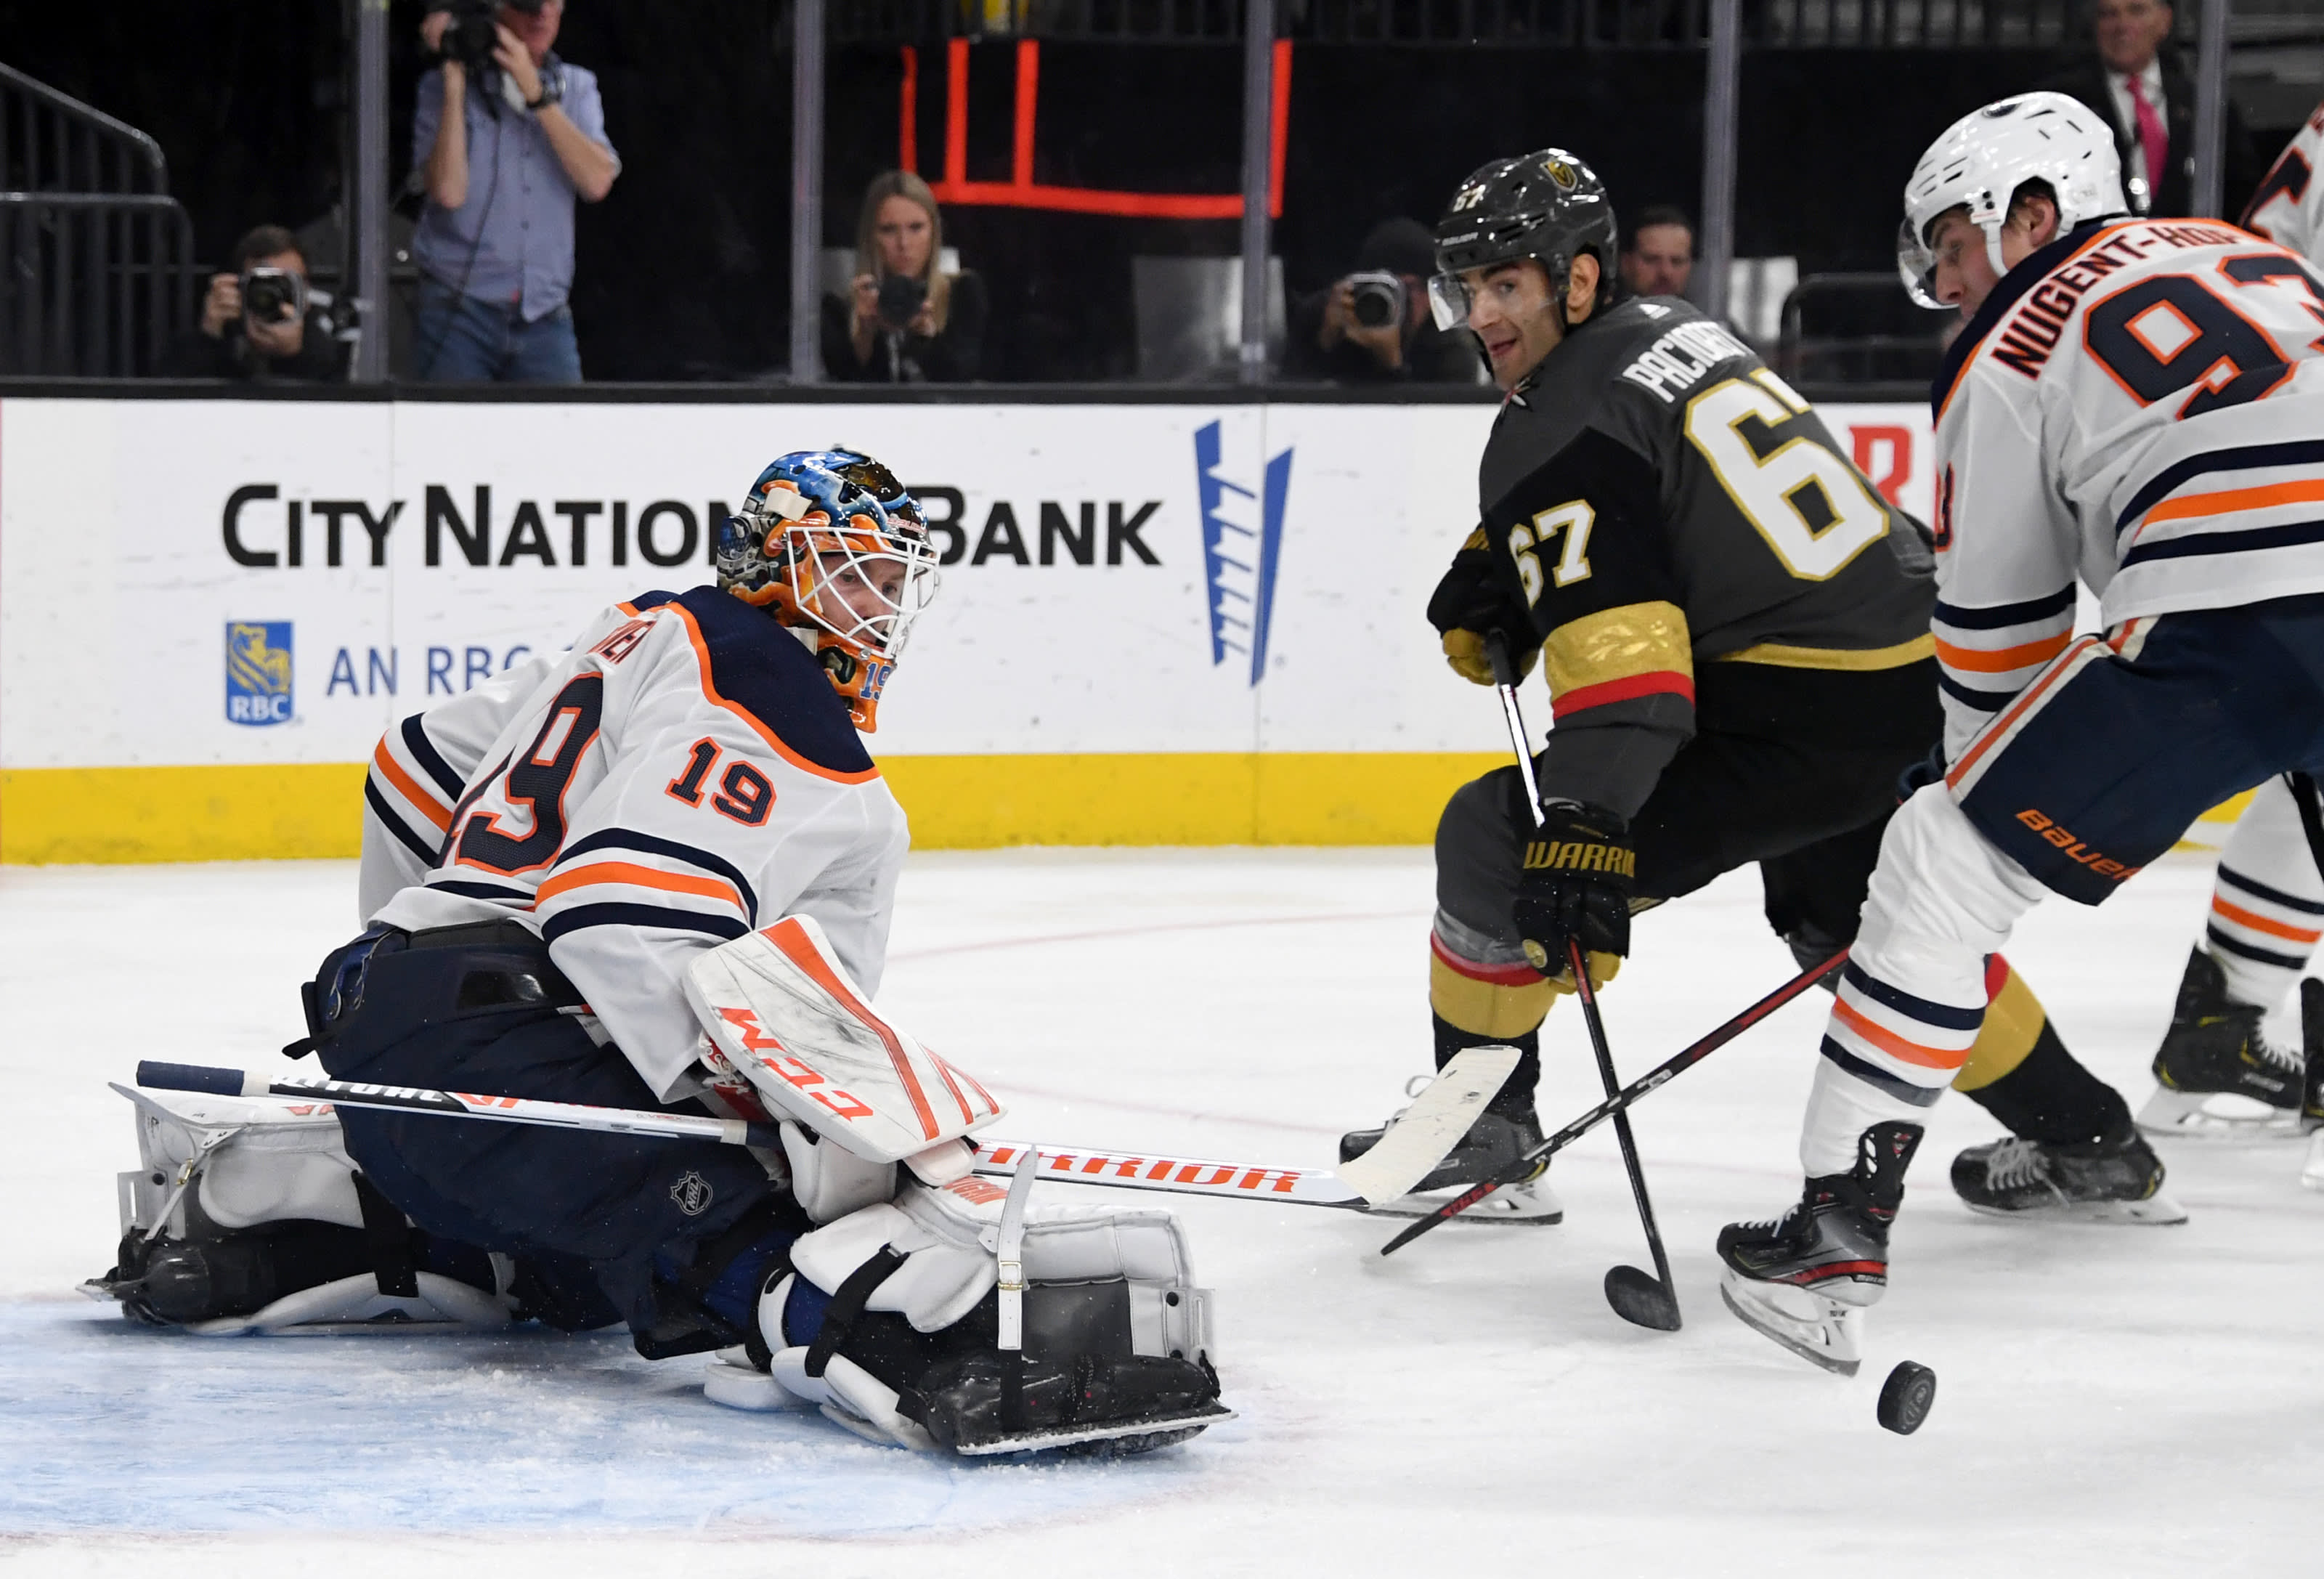 Mikko Koskinen #19 of the Edmonton Oilers makes a save as Max Pacioretty #67 of the Vegas Golden Knights looks for a rebound.